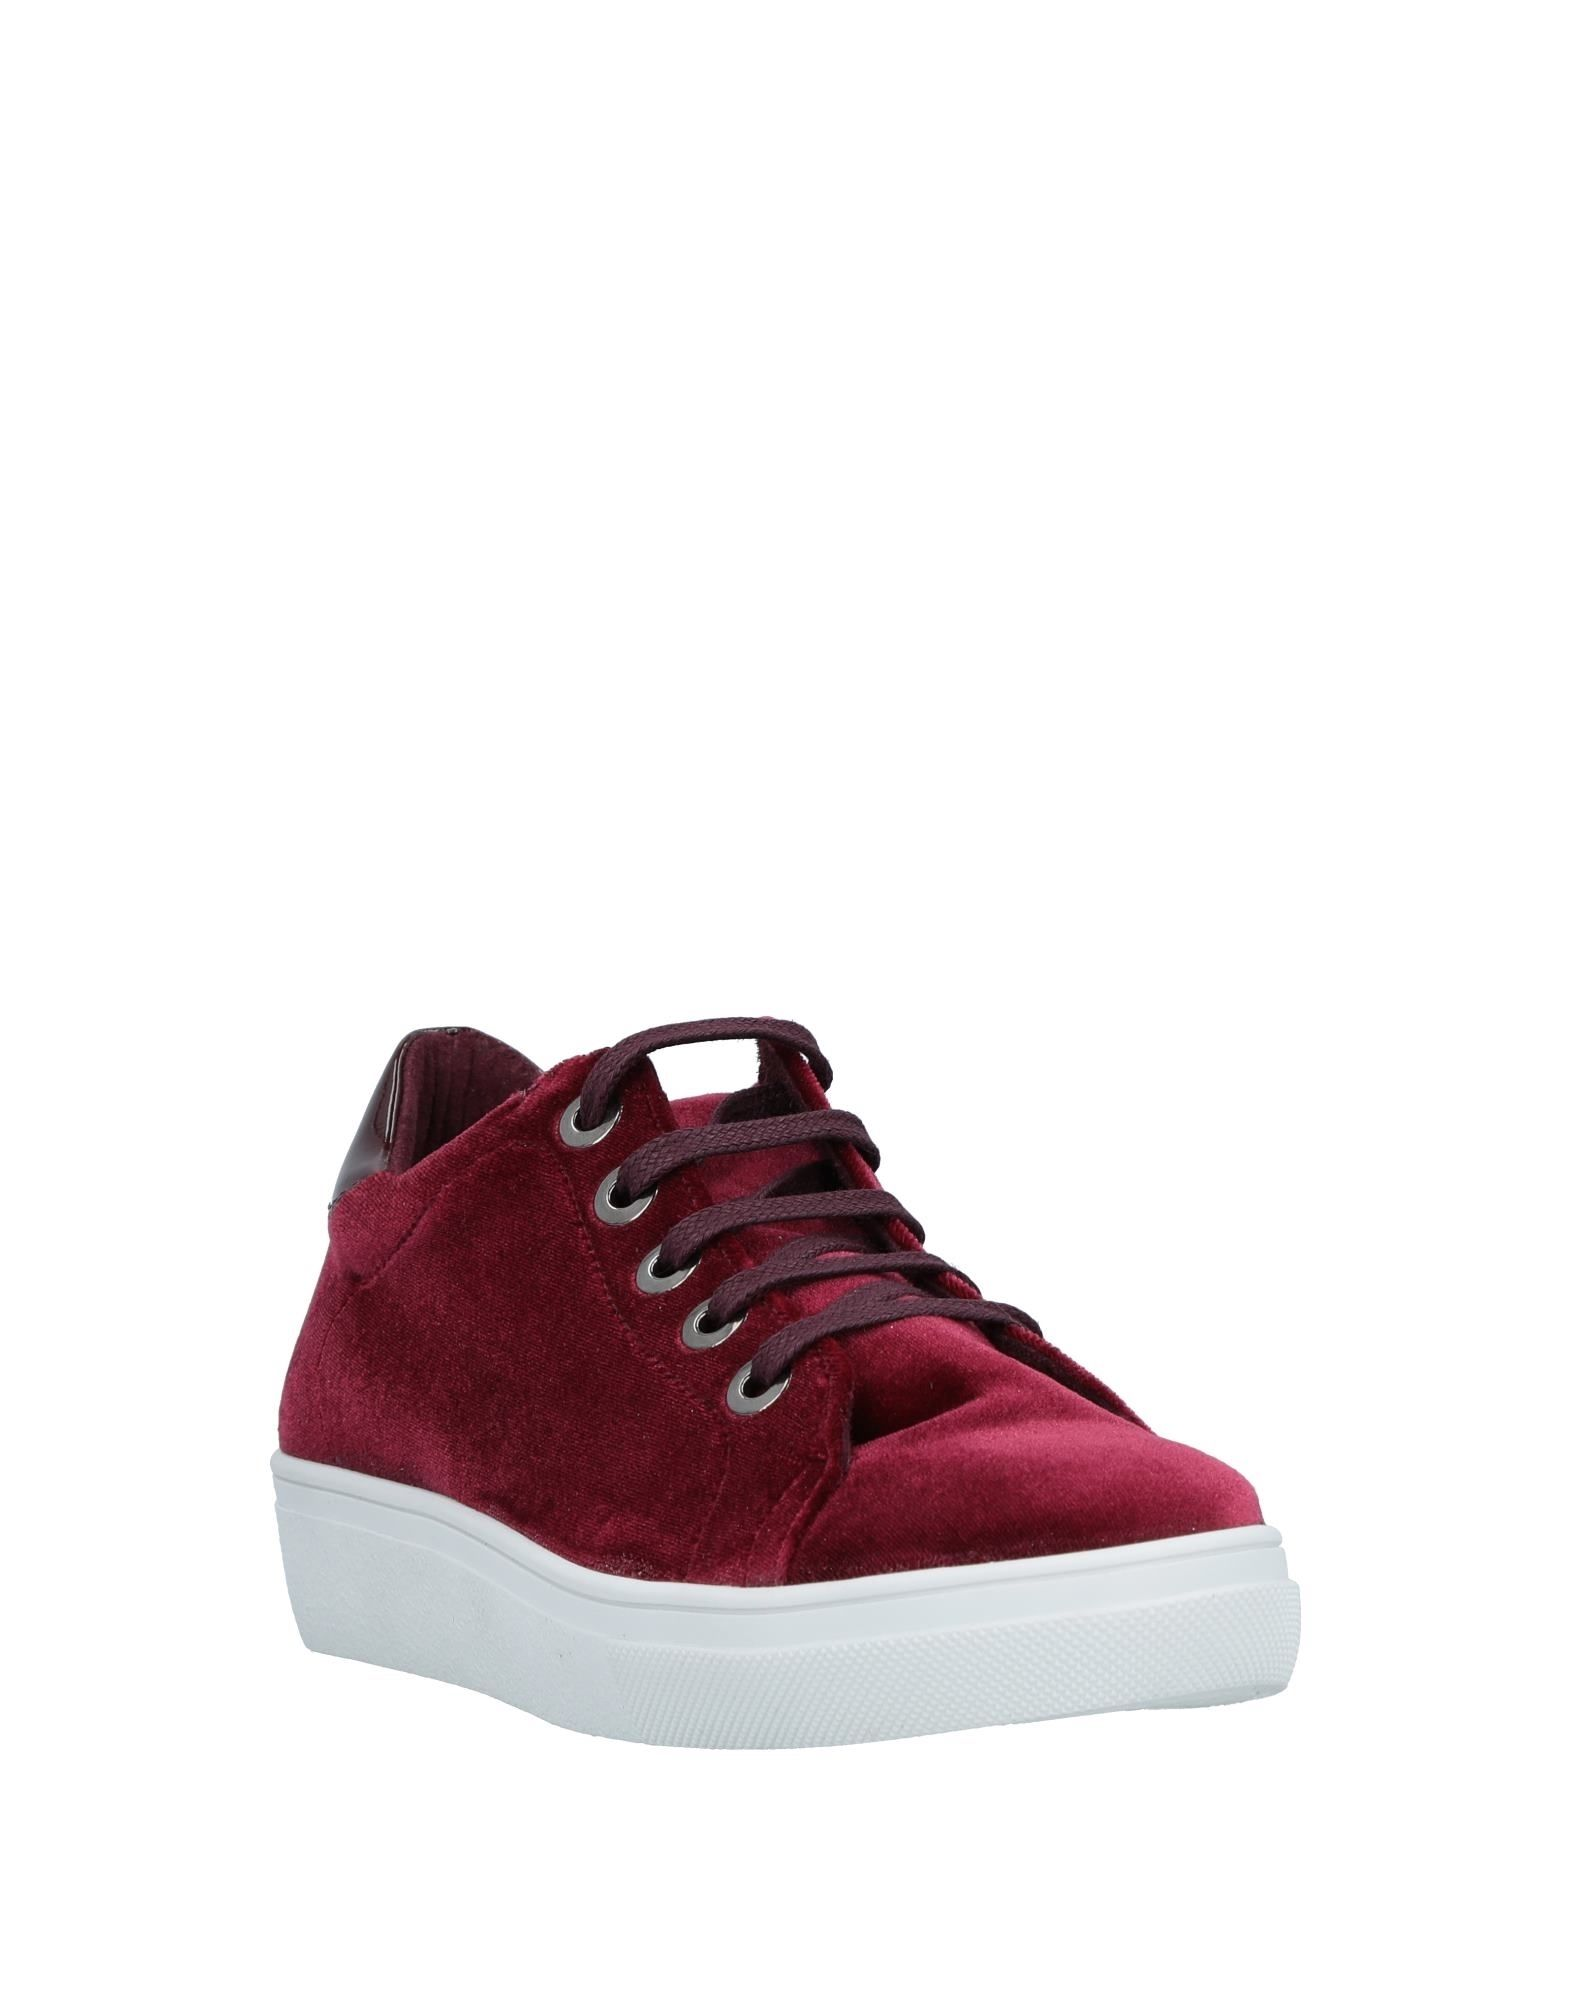 Maria Maria Maria Barcelo Sneakers - Women Maria Barcelo Sneakers online on  United Kingdom - 11521316CD d912bd